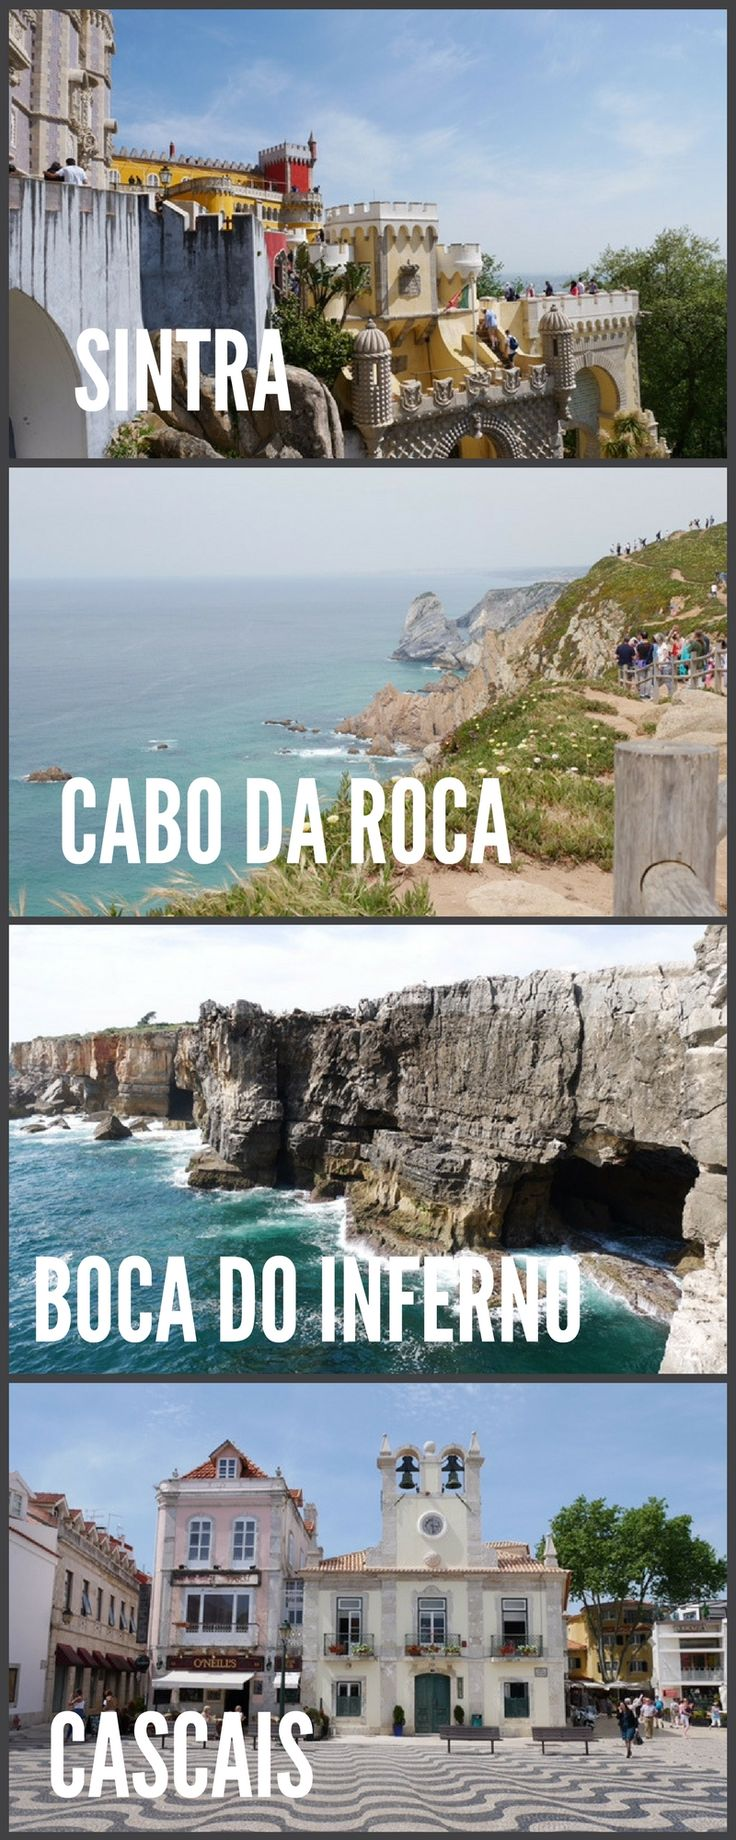 The most popular day trip from Lisbon is to wonderful Sintra but many more places in the area deserve a visit. Click on the image to see how to easily visit Sintra, Cabo da Roca, Boca de Inferno and Cascais Portugal all on in one day. best day trip from Lisbon | day trip Lisbon to Sintra | What to see in Sintra | Why you should visit Cascais | Visit Cabo da Roca, Portugal